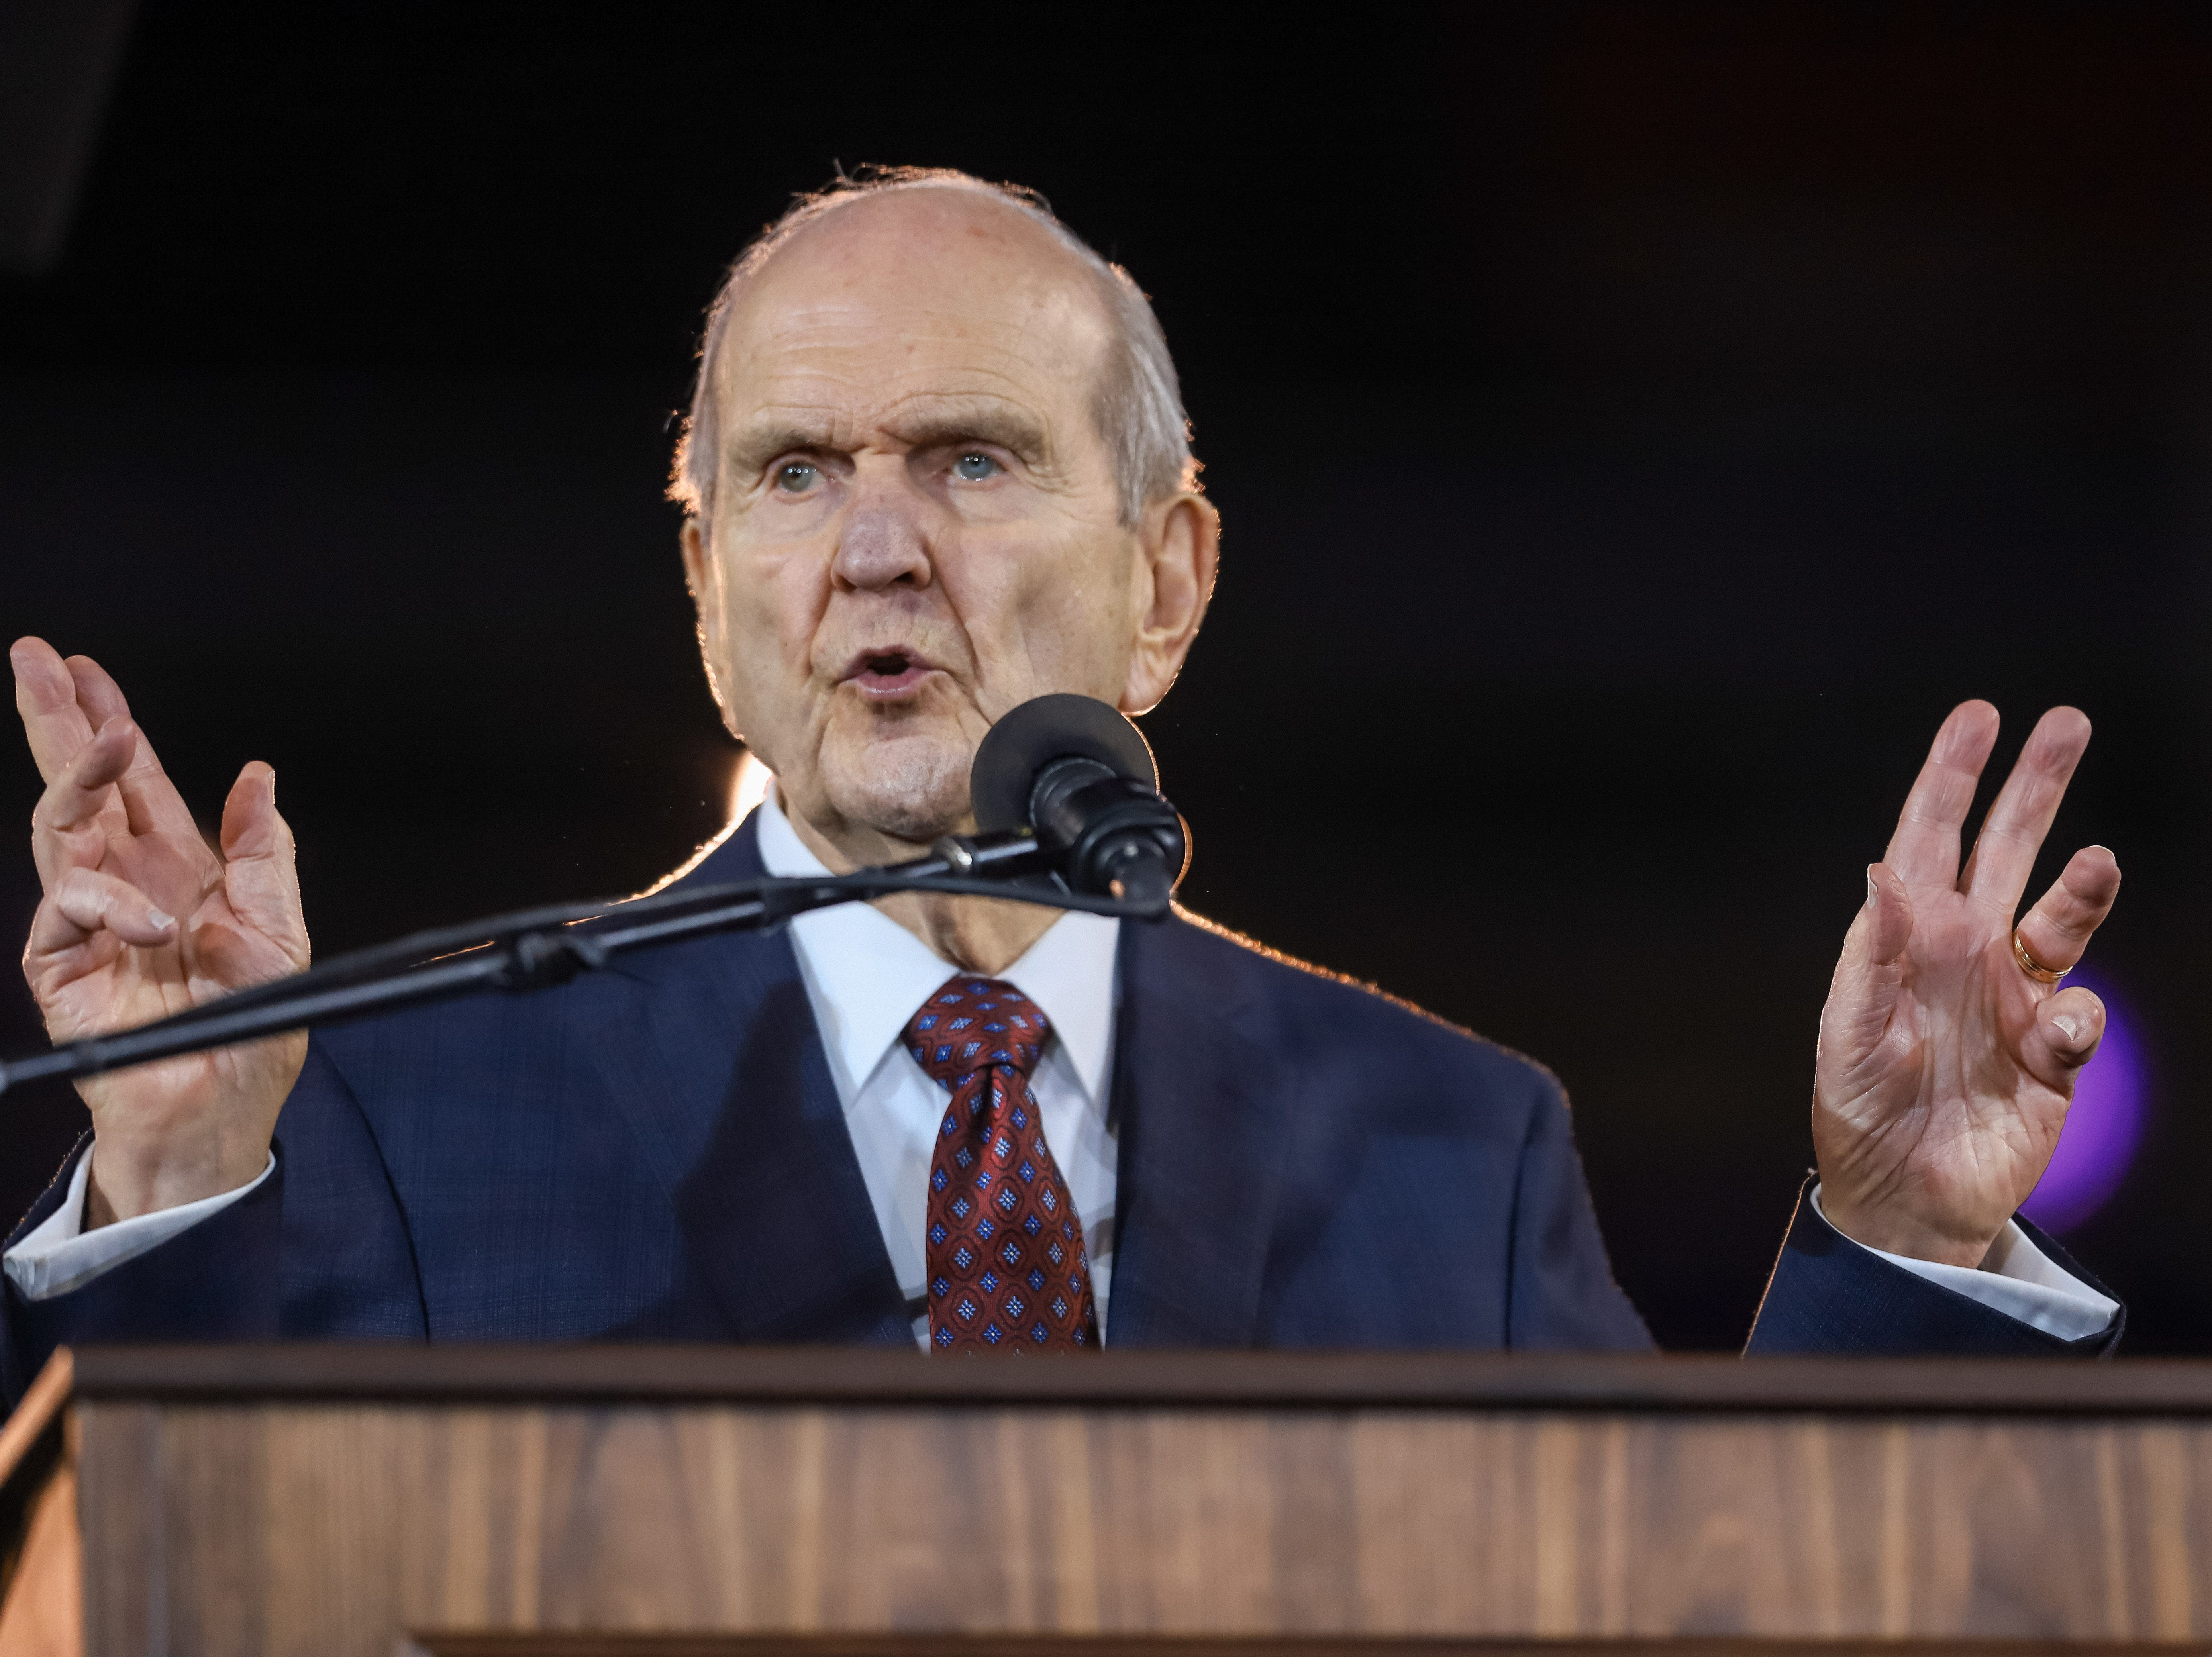 President Russell M. Nelson, the prophet of the Church of Jesus Christ of Latter-day Saints, speaks to nearly 70,000 people at State Farm Stadium in Glendale, Arizona on Sunday, Feb. 10, 2019.